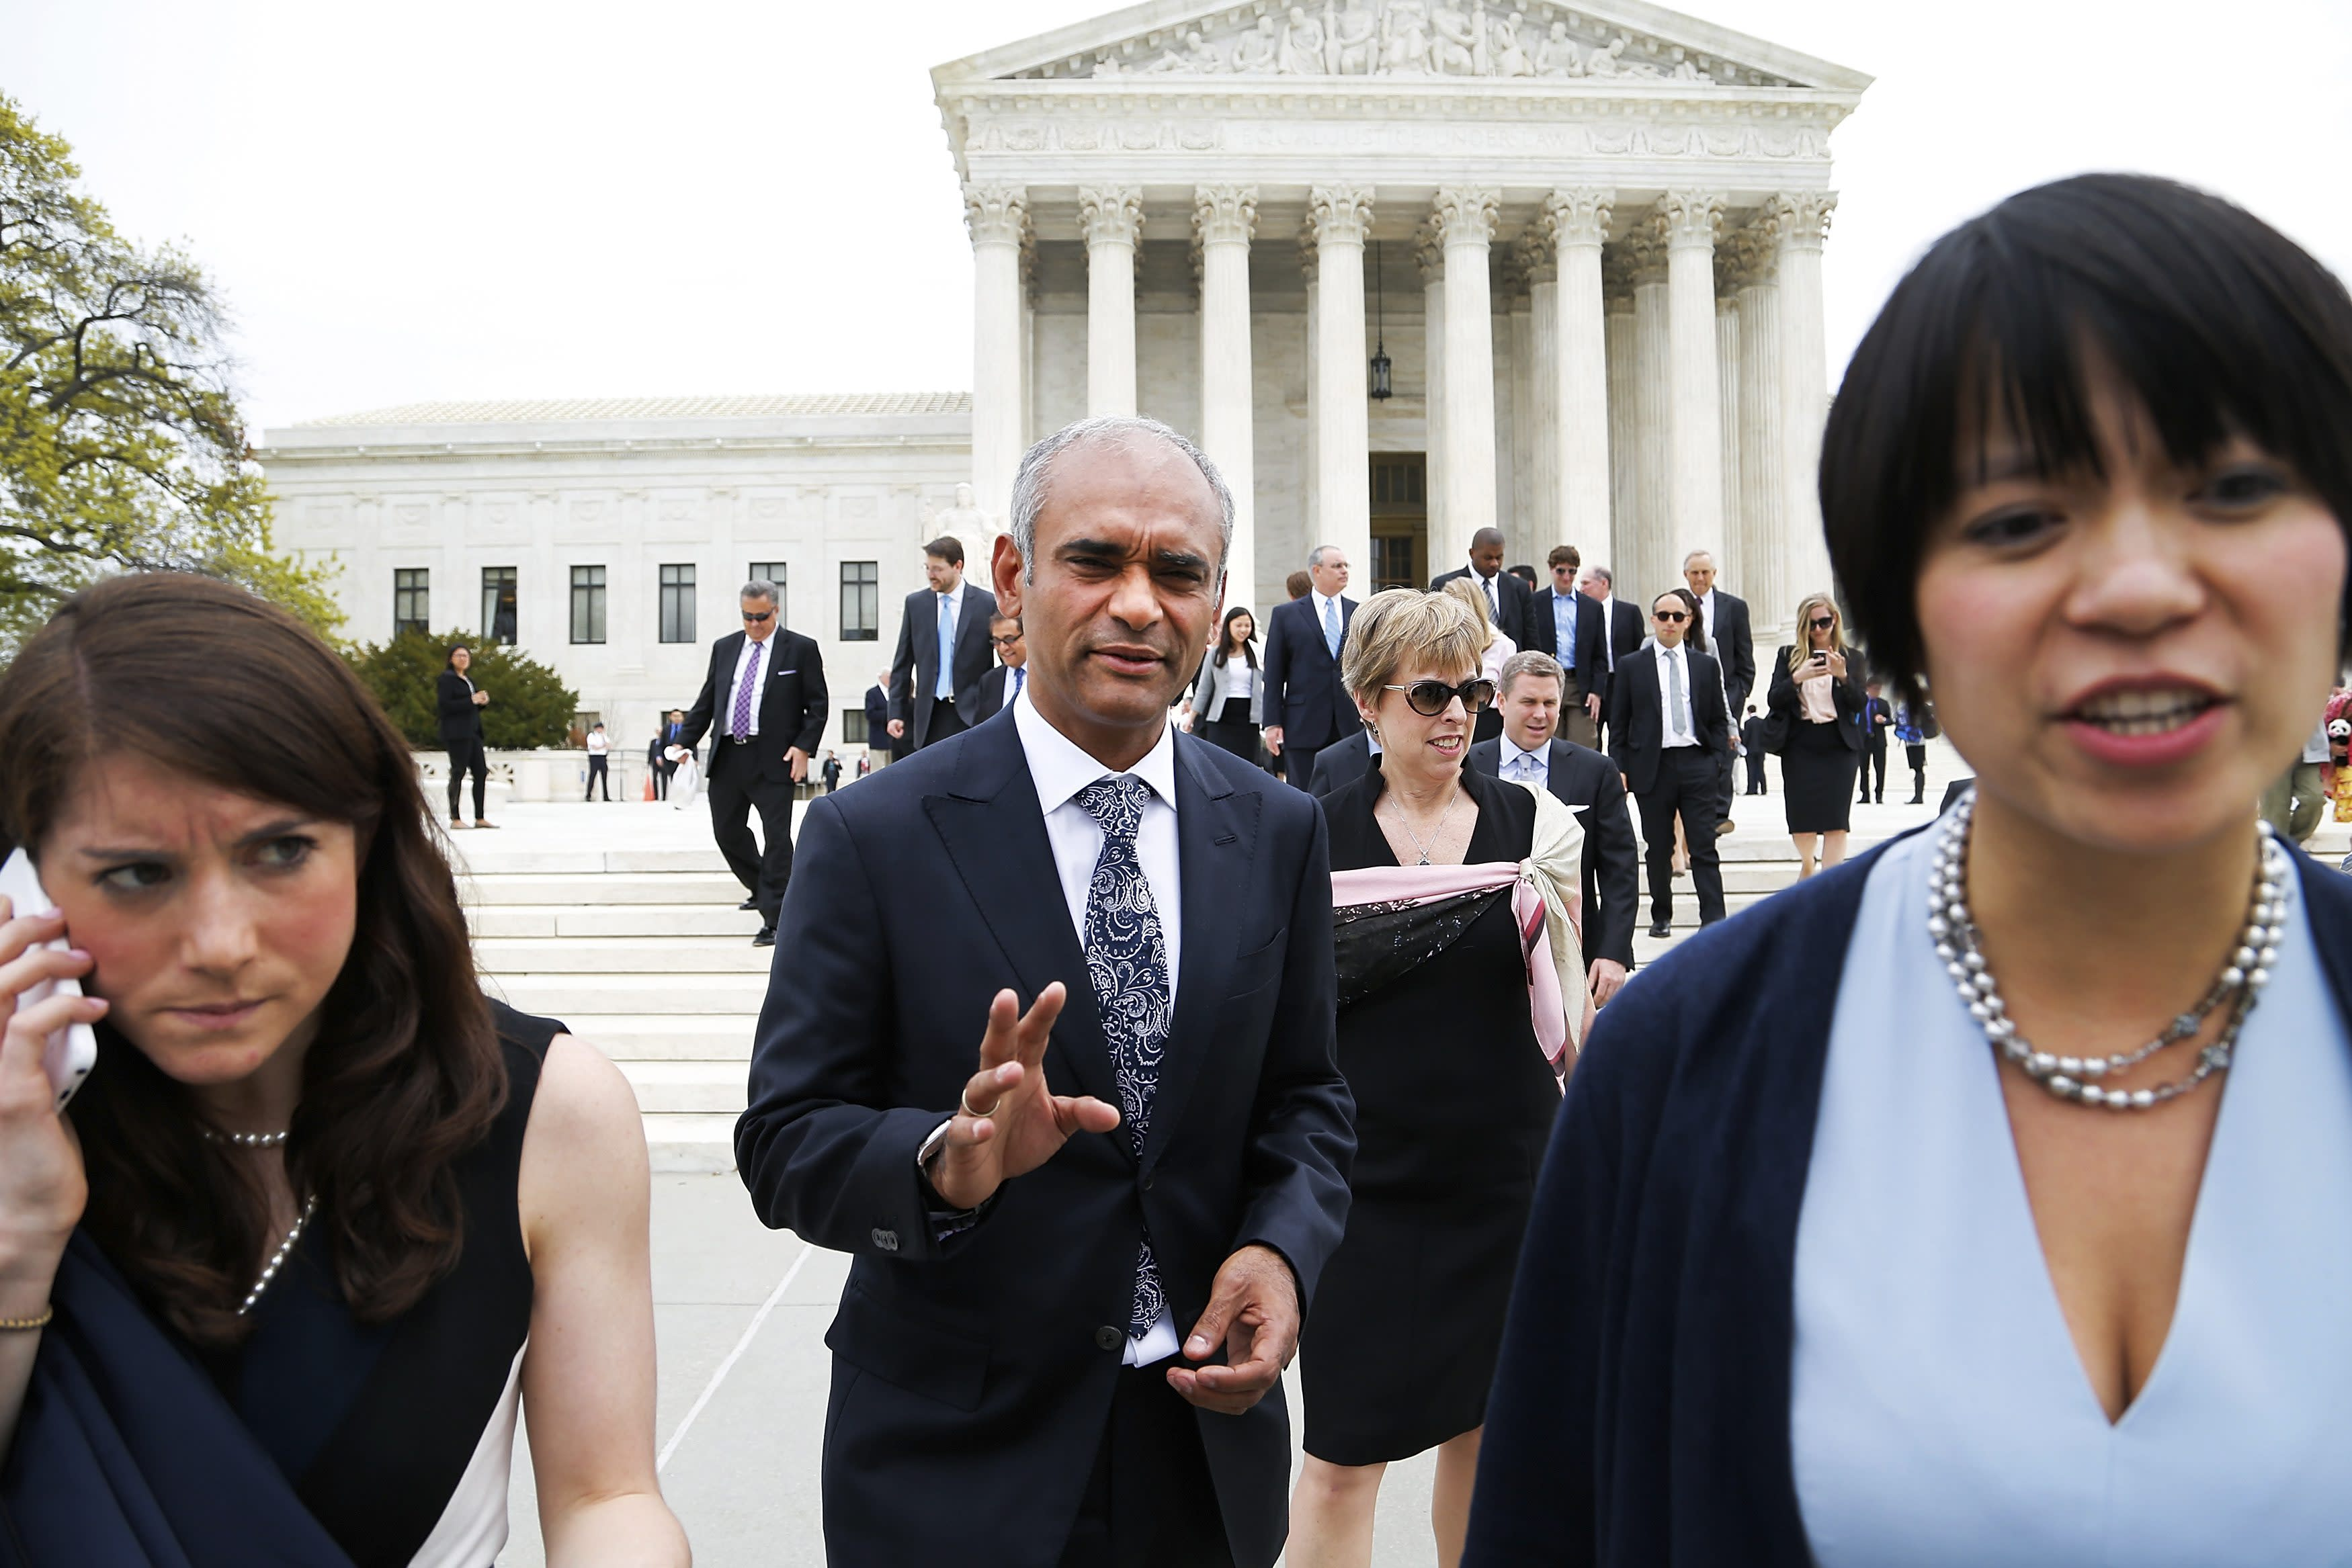 Aereo CEO and founder Chet Kanojia (C) departs the U.S. Supreme Court in Washington April 22, 2014. The court heard an appeal filed by the four major broadcasters, who say the online TV startup Aereo Inc steals copyrighted content, and the case is being closely watched due to concerns that a ruling against Aereo could call into question cloud computing services, in which personal files, including TV shows, are stored remotely on the internet. REUTERS/Jonathan Ernst (UNITED STATES - Tags: CRIME LAW BUSINESS MEDIA)